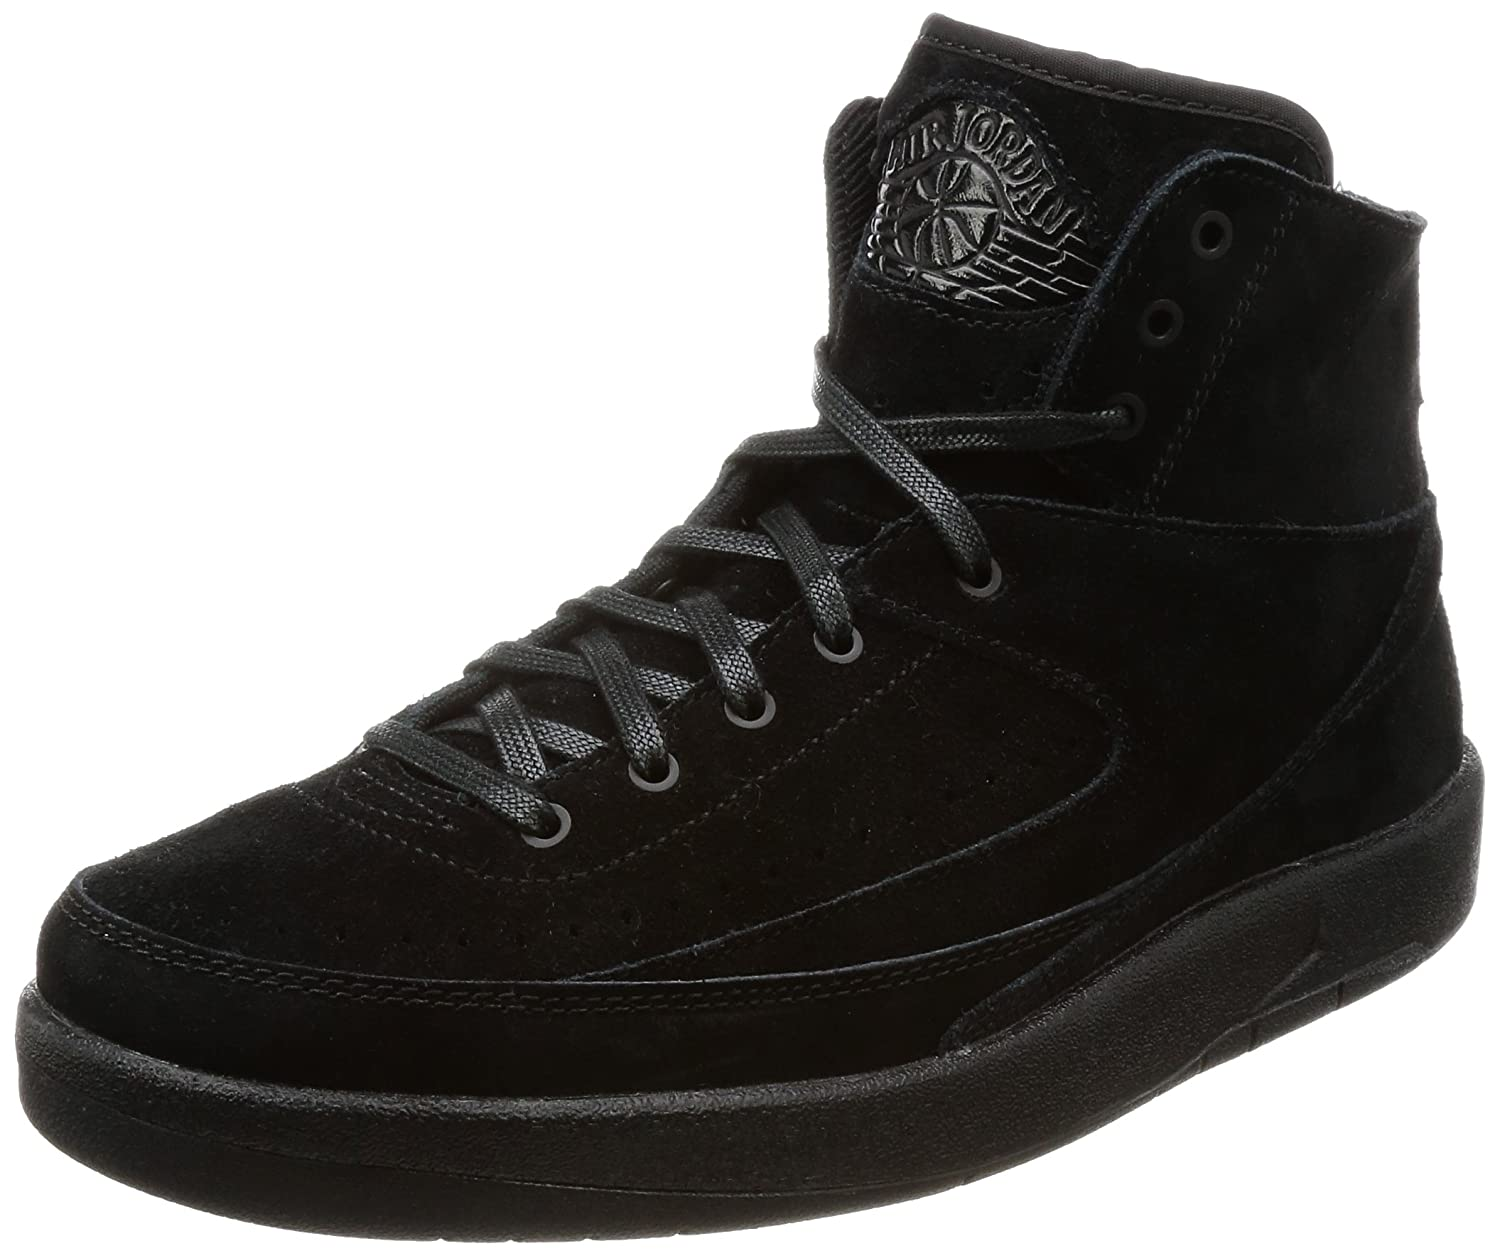 Nike Herren Air Jordan 2 Decon Gymnastikschuhe, Black, Black  EU 45 US 11 UK 10|Schwarz (Black Black)